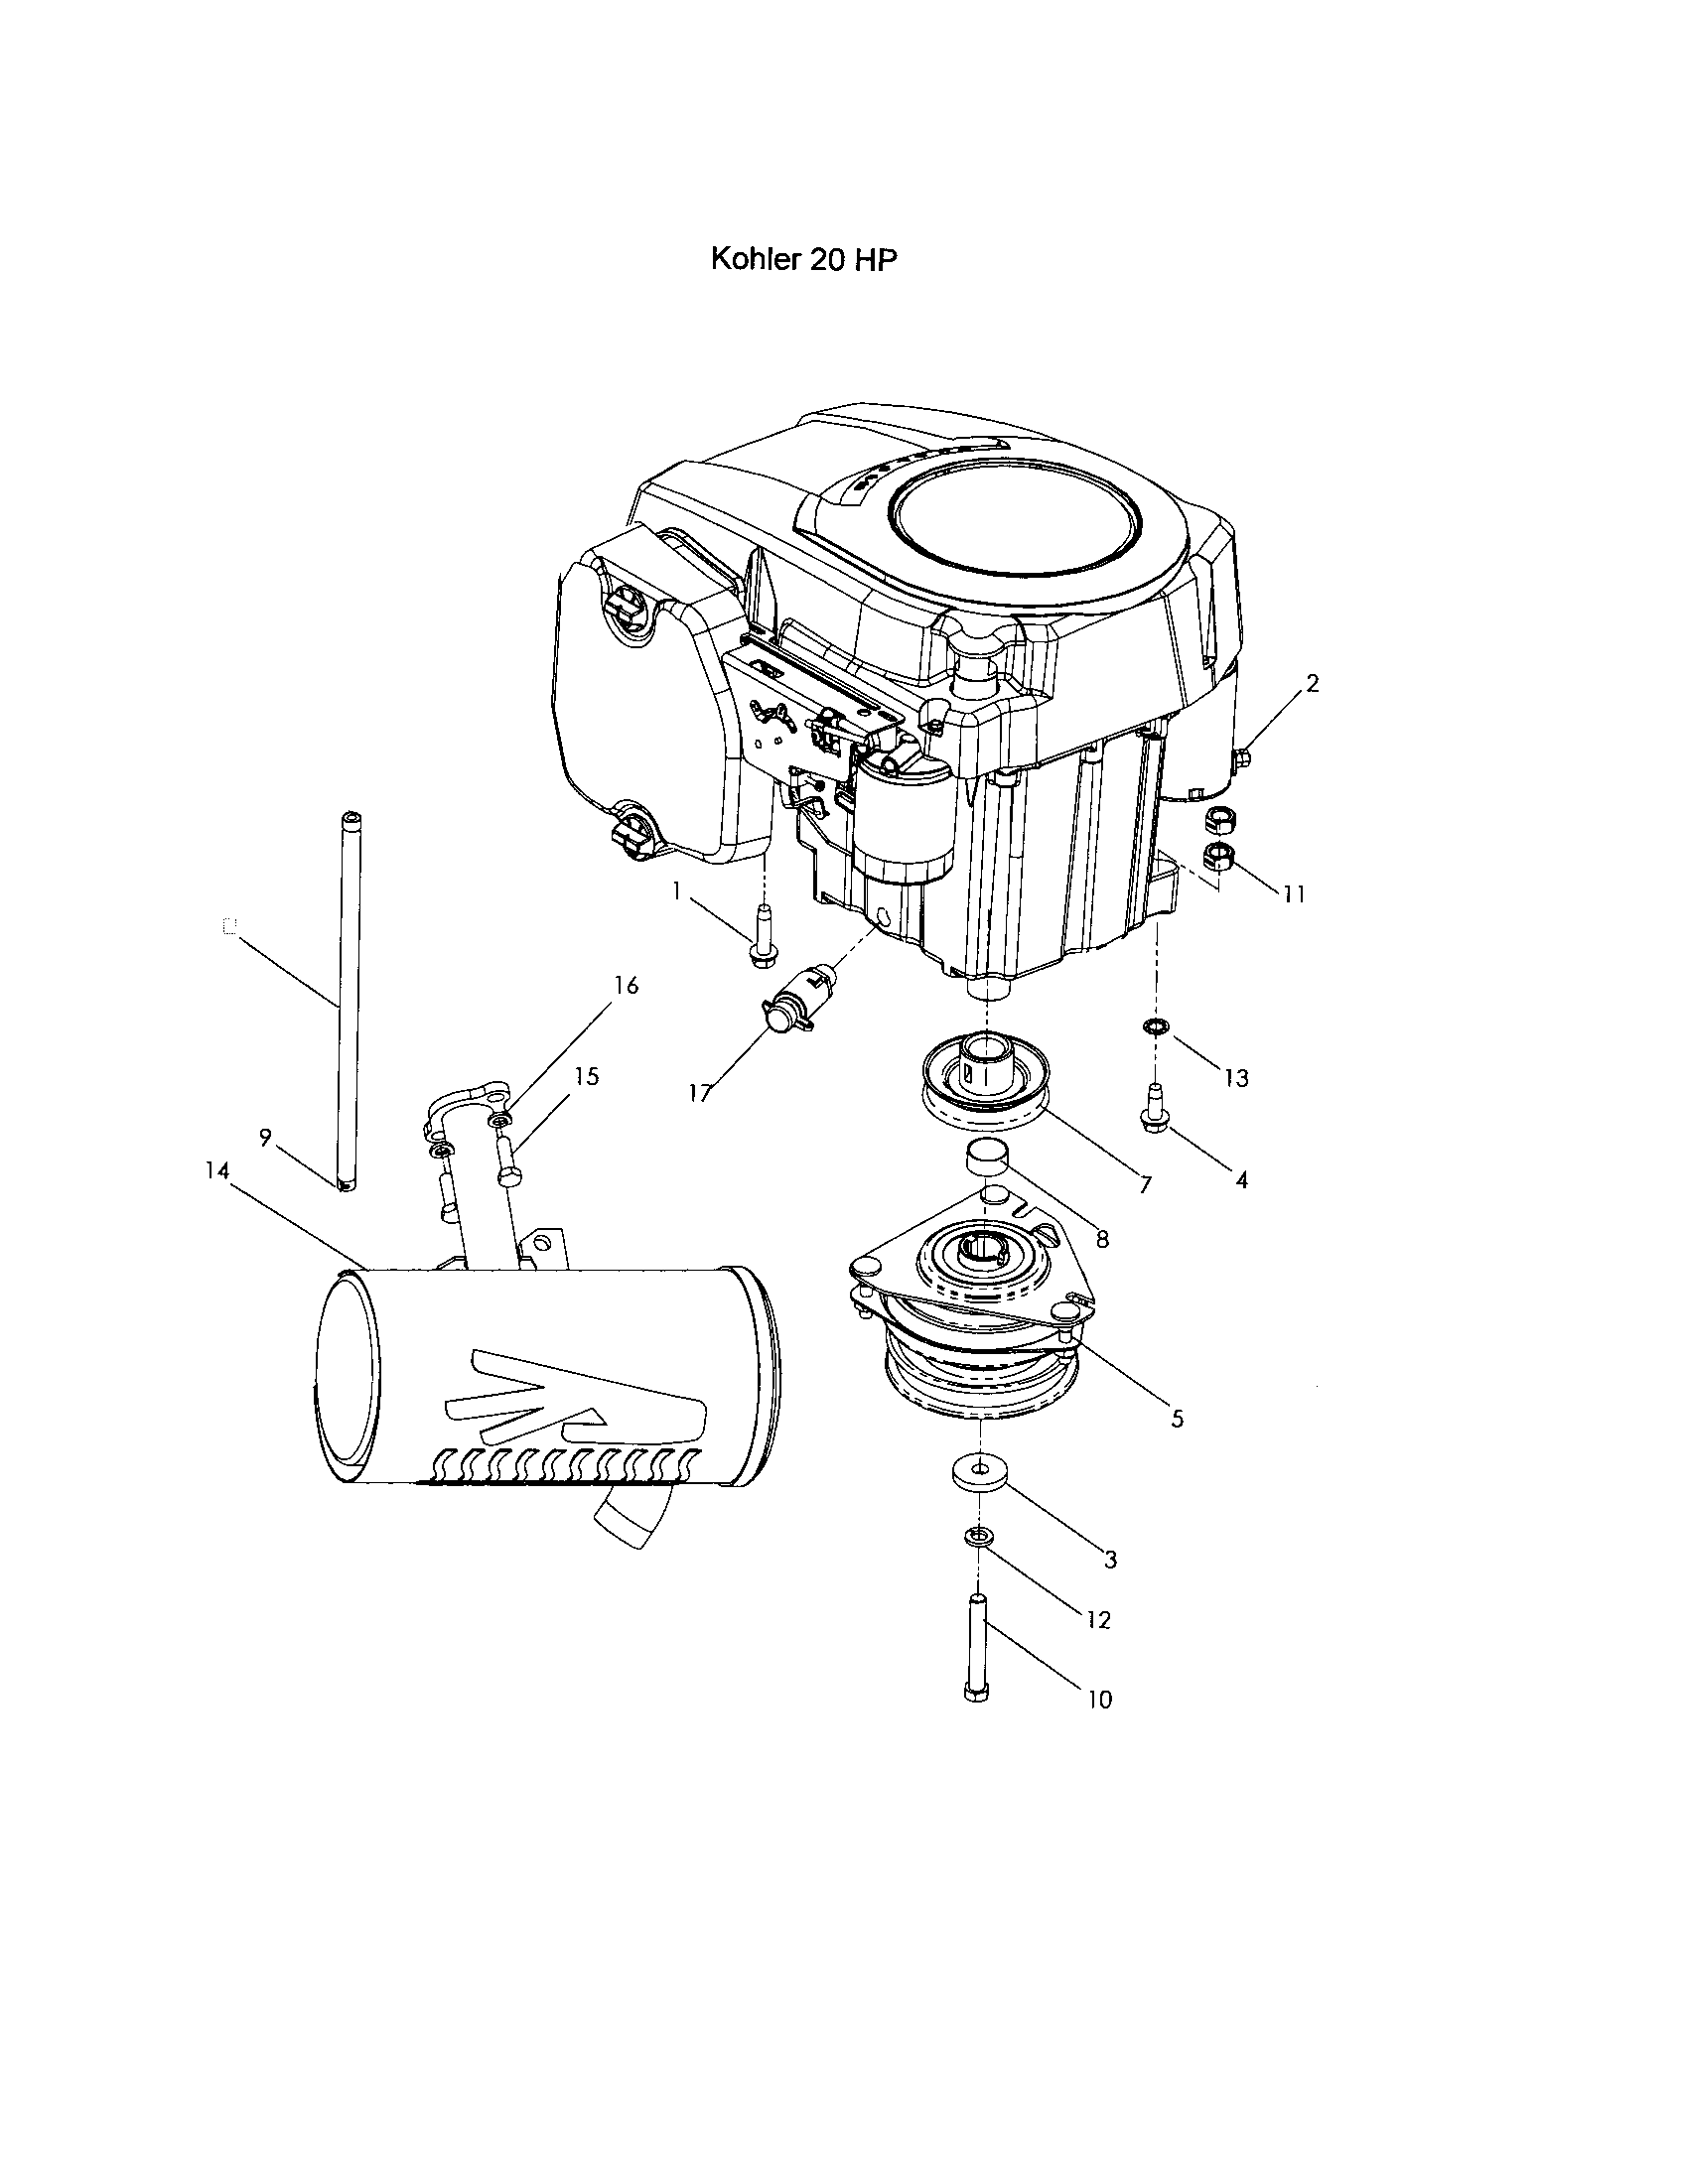 Kohler motor parts diagram images